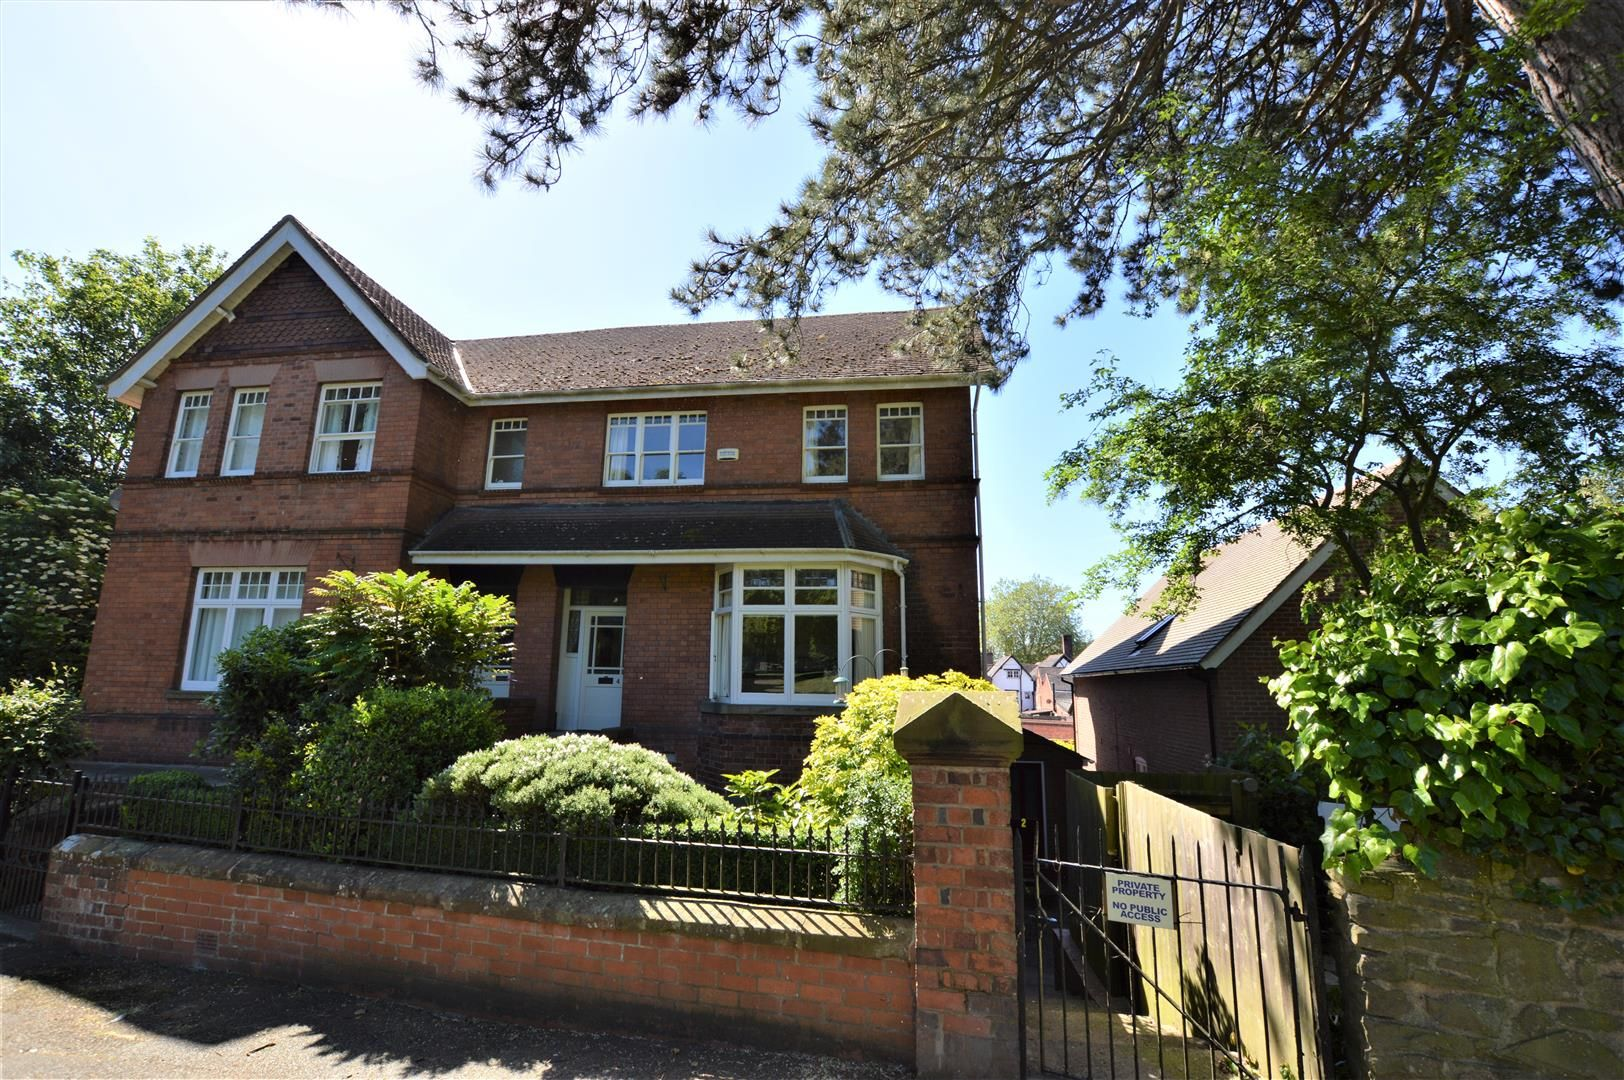 4 bed semi-detached for sale in Etnam Street, Leominster, HR6